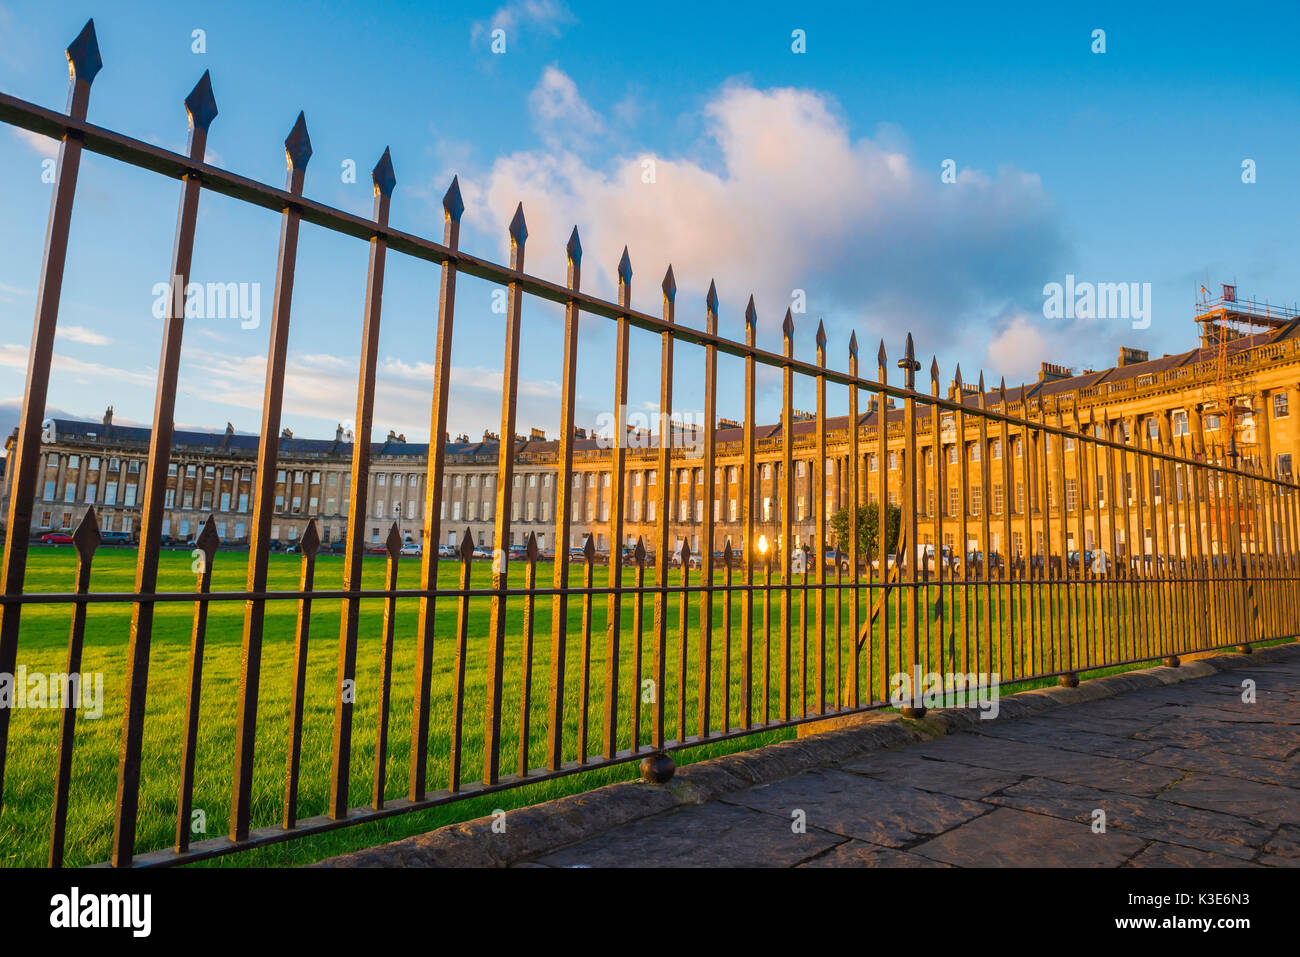 Royal Crescent Bath, view through iron railings of the Royal Crescent and its park in the centre of Bath, England, UK. - Stock Image